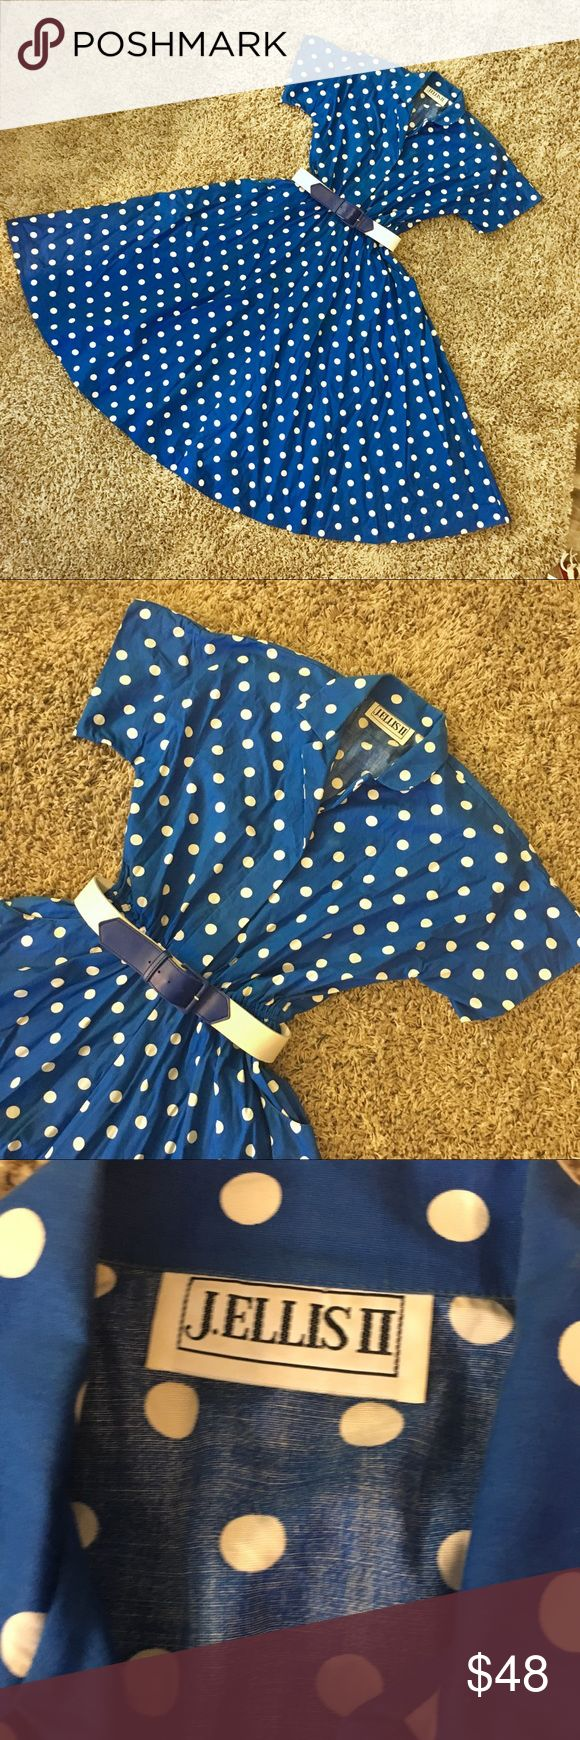 """Vintage Blue Polka Dot Belted Circle Skirt Dress This lovely dress has a collared top, a hem that hits mid-calf, and reminds me of Lucille Ball!  Dress has an elastic waist which can be belted with the included blue and white belt.  Did I mention it has pockets?!? No rips or tears, but there are several very faint yellow spots on the left breast and left upper thigh.  Not noticeable to me until I was inspecting it closely for listing.  Blouse part has clear buttons. Measurements: 47"""" length…"""